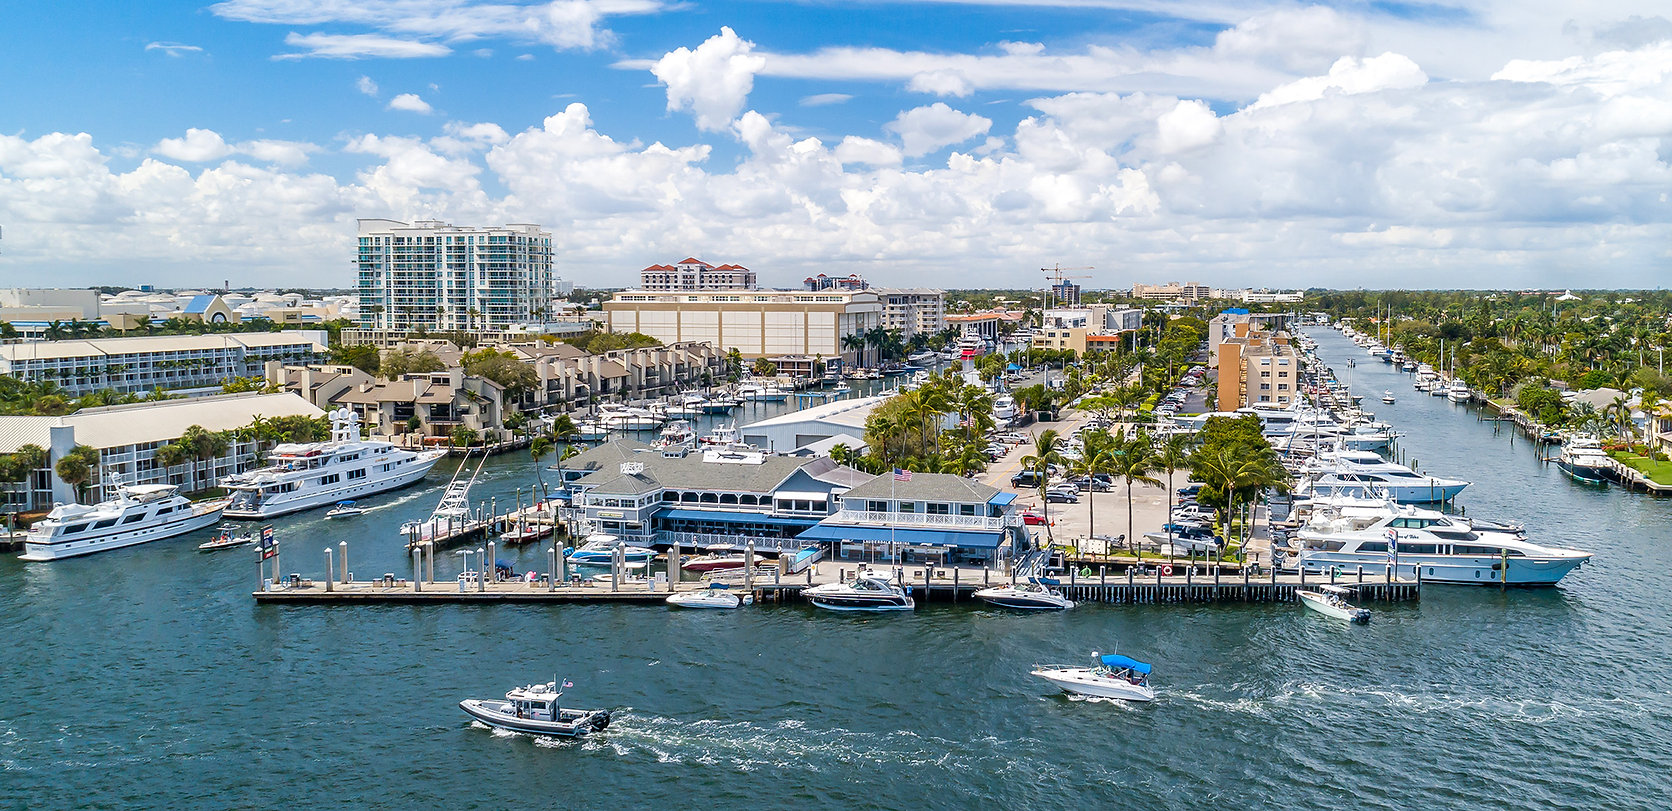 This is a drone view of the Lauderdale Marina fuel dock on the Intracoastal Waterway.